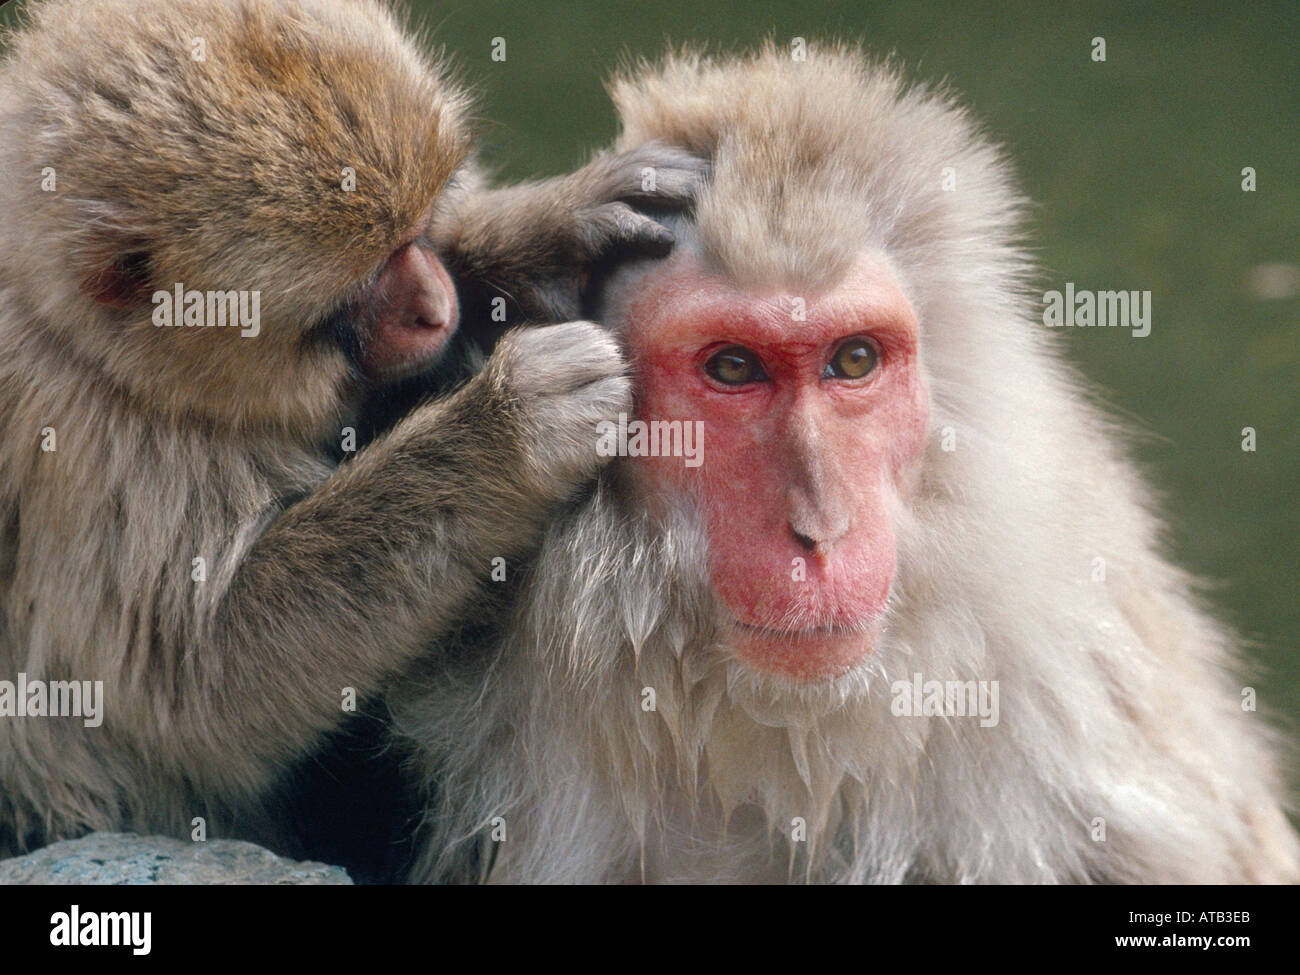 Young Japanese macaque grooming old female - Stock Image